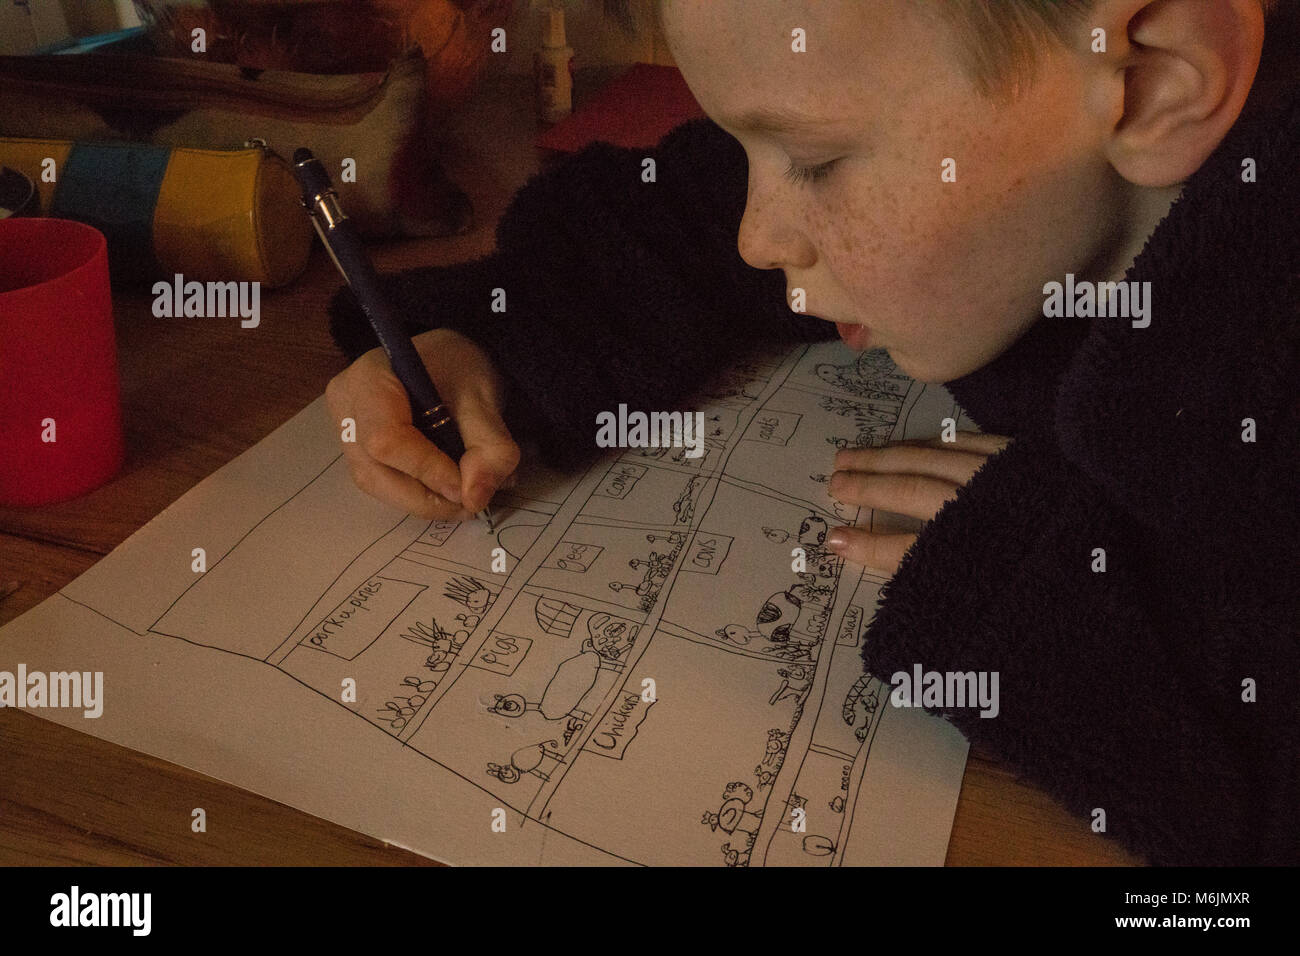 7-year old boy drawing at the breakfast table. Non-digital, non-screen, analogue entertainment. - Stock Image